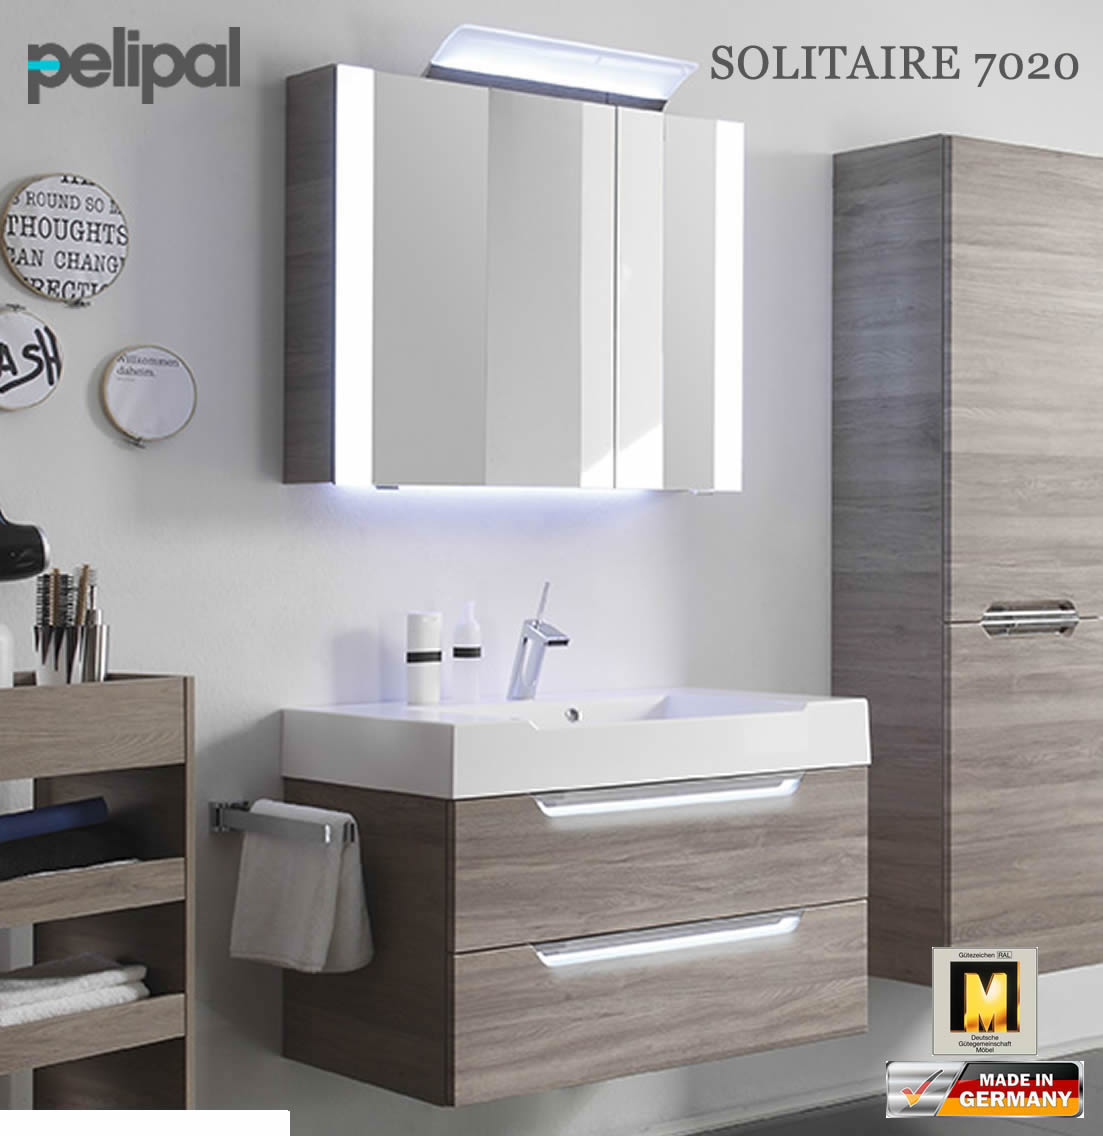 pelipal solitaire 7020 badm bel set mit 860 mm waschtisch v1 8 impuls home. Black Bedroom Furniture Sets. Home Design Ideas